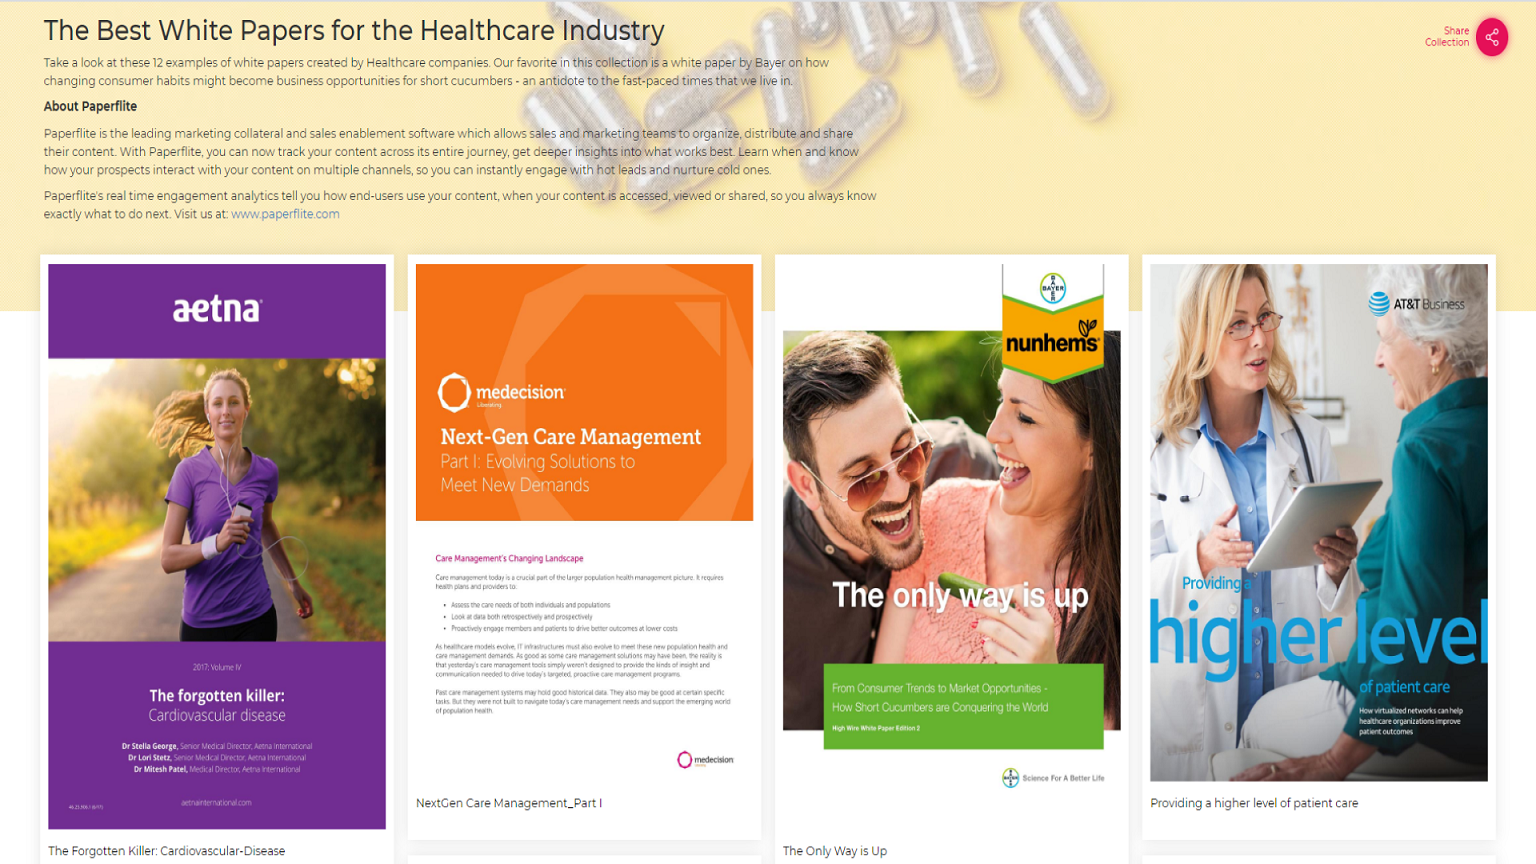 The Best White Papers for the Healthcare Industry